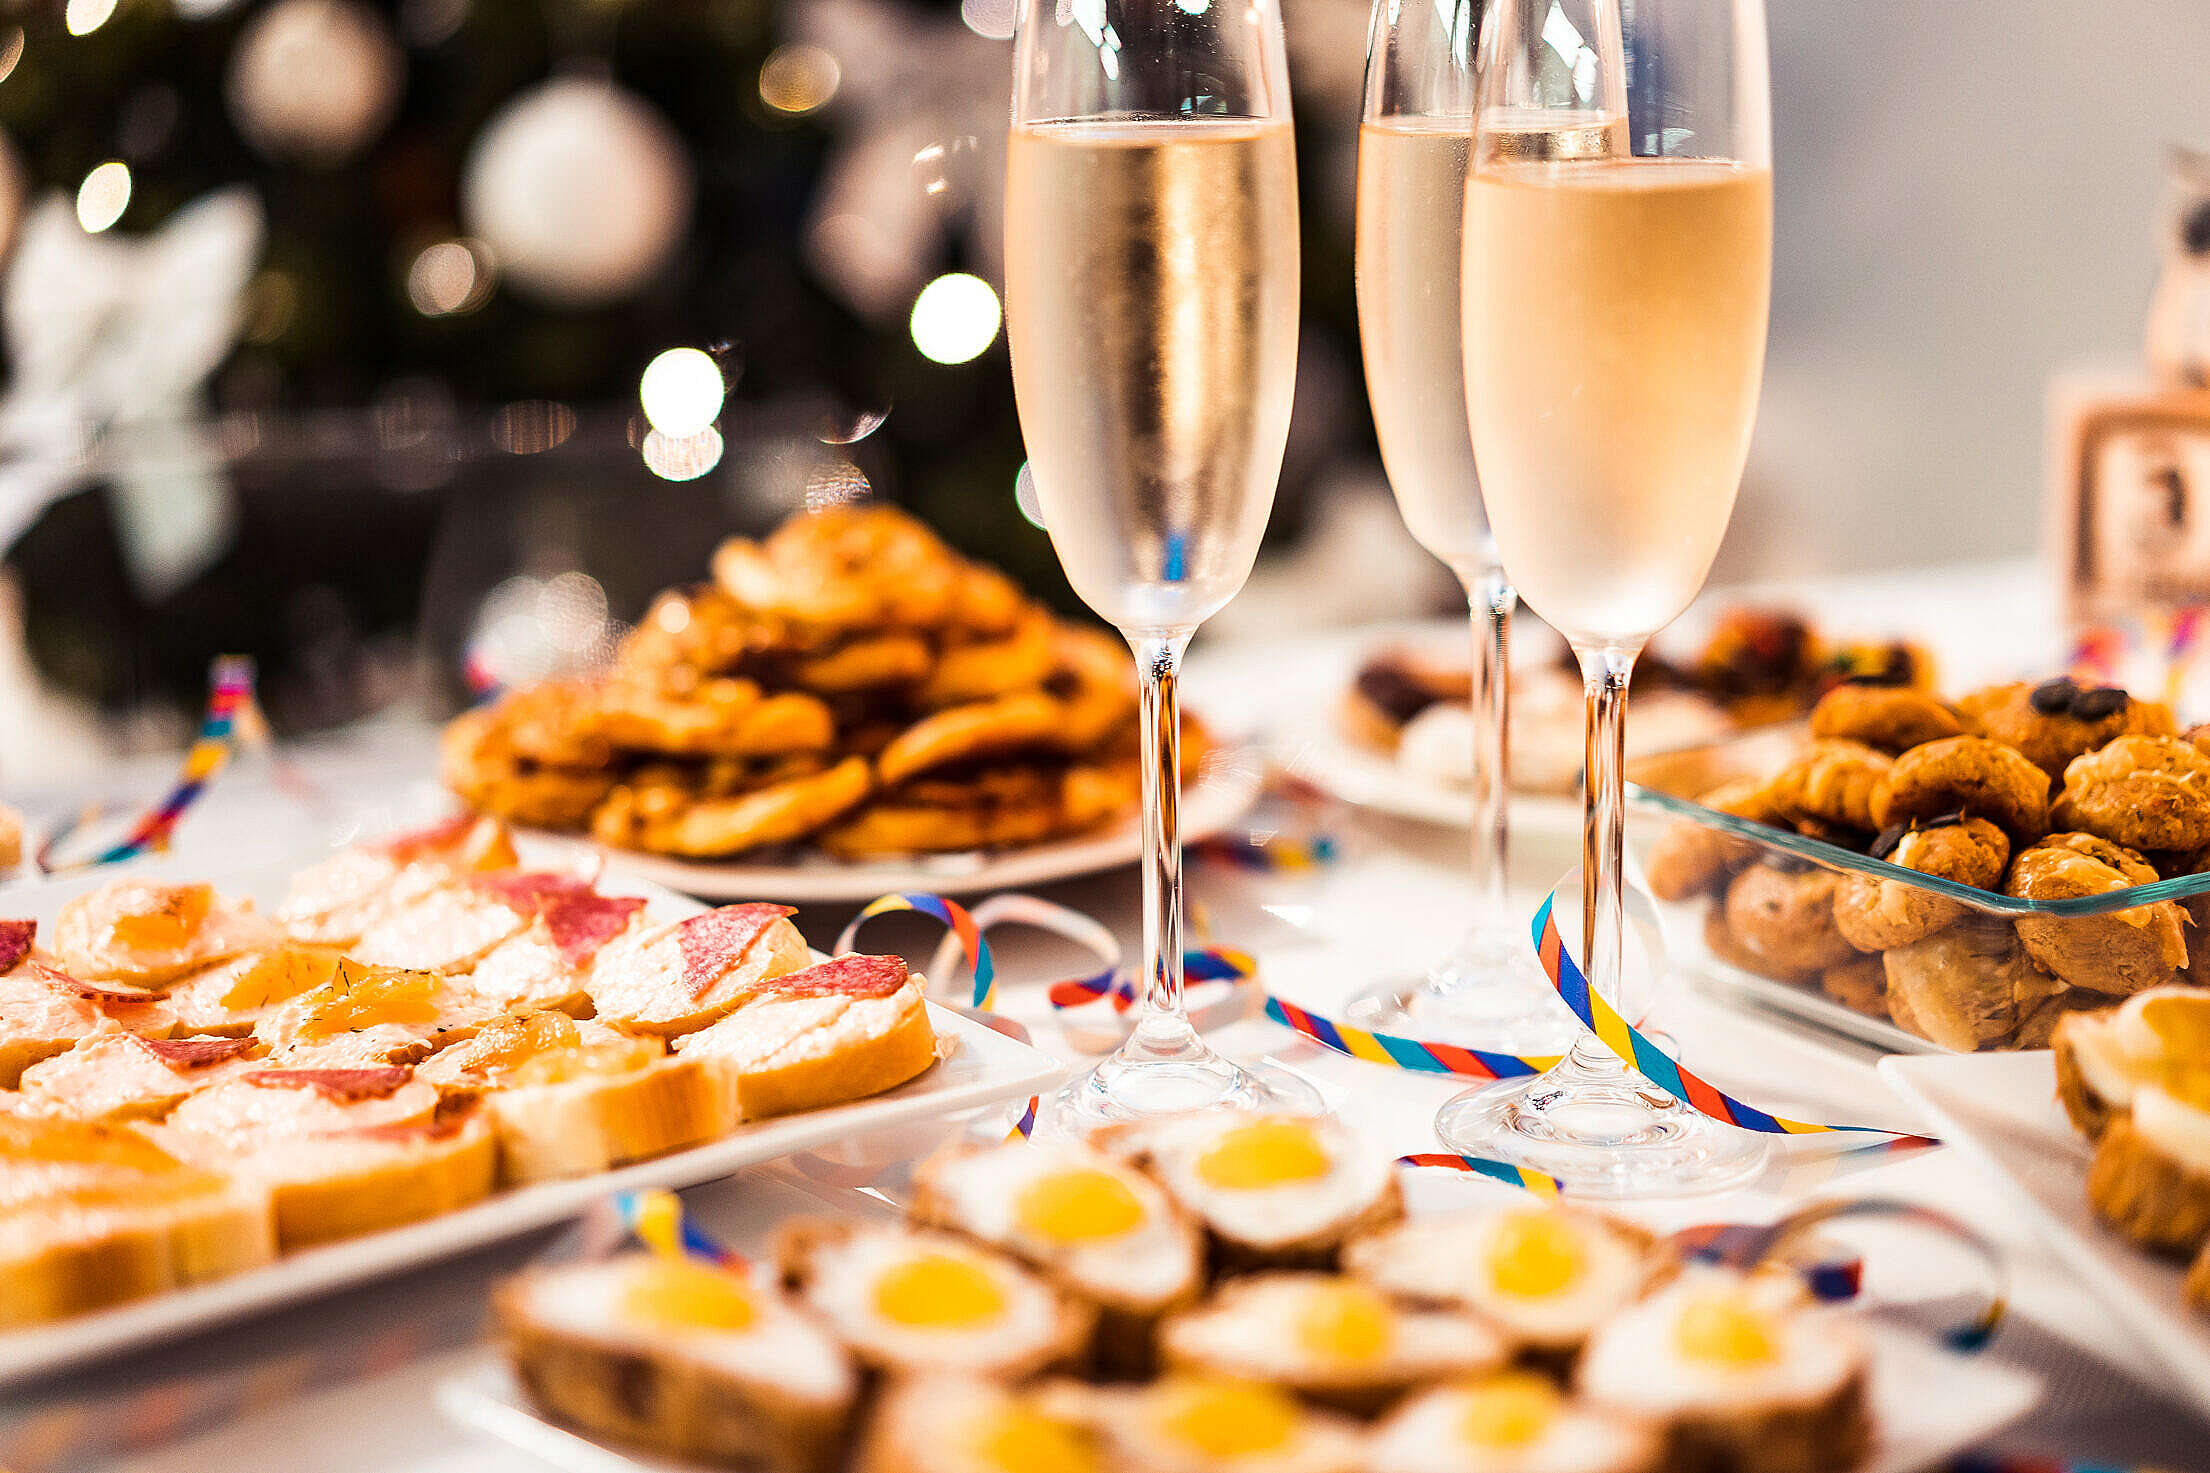 New Year Home Party Free Stock Photo